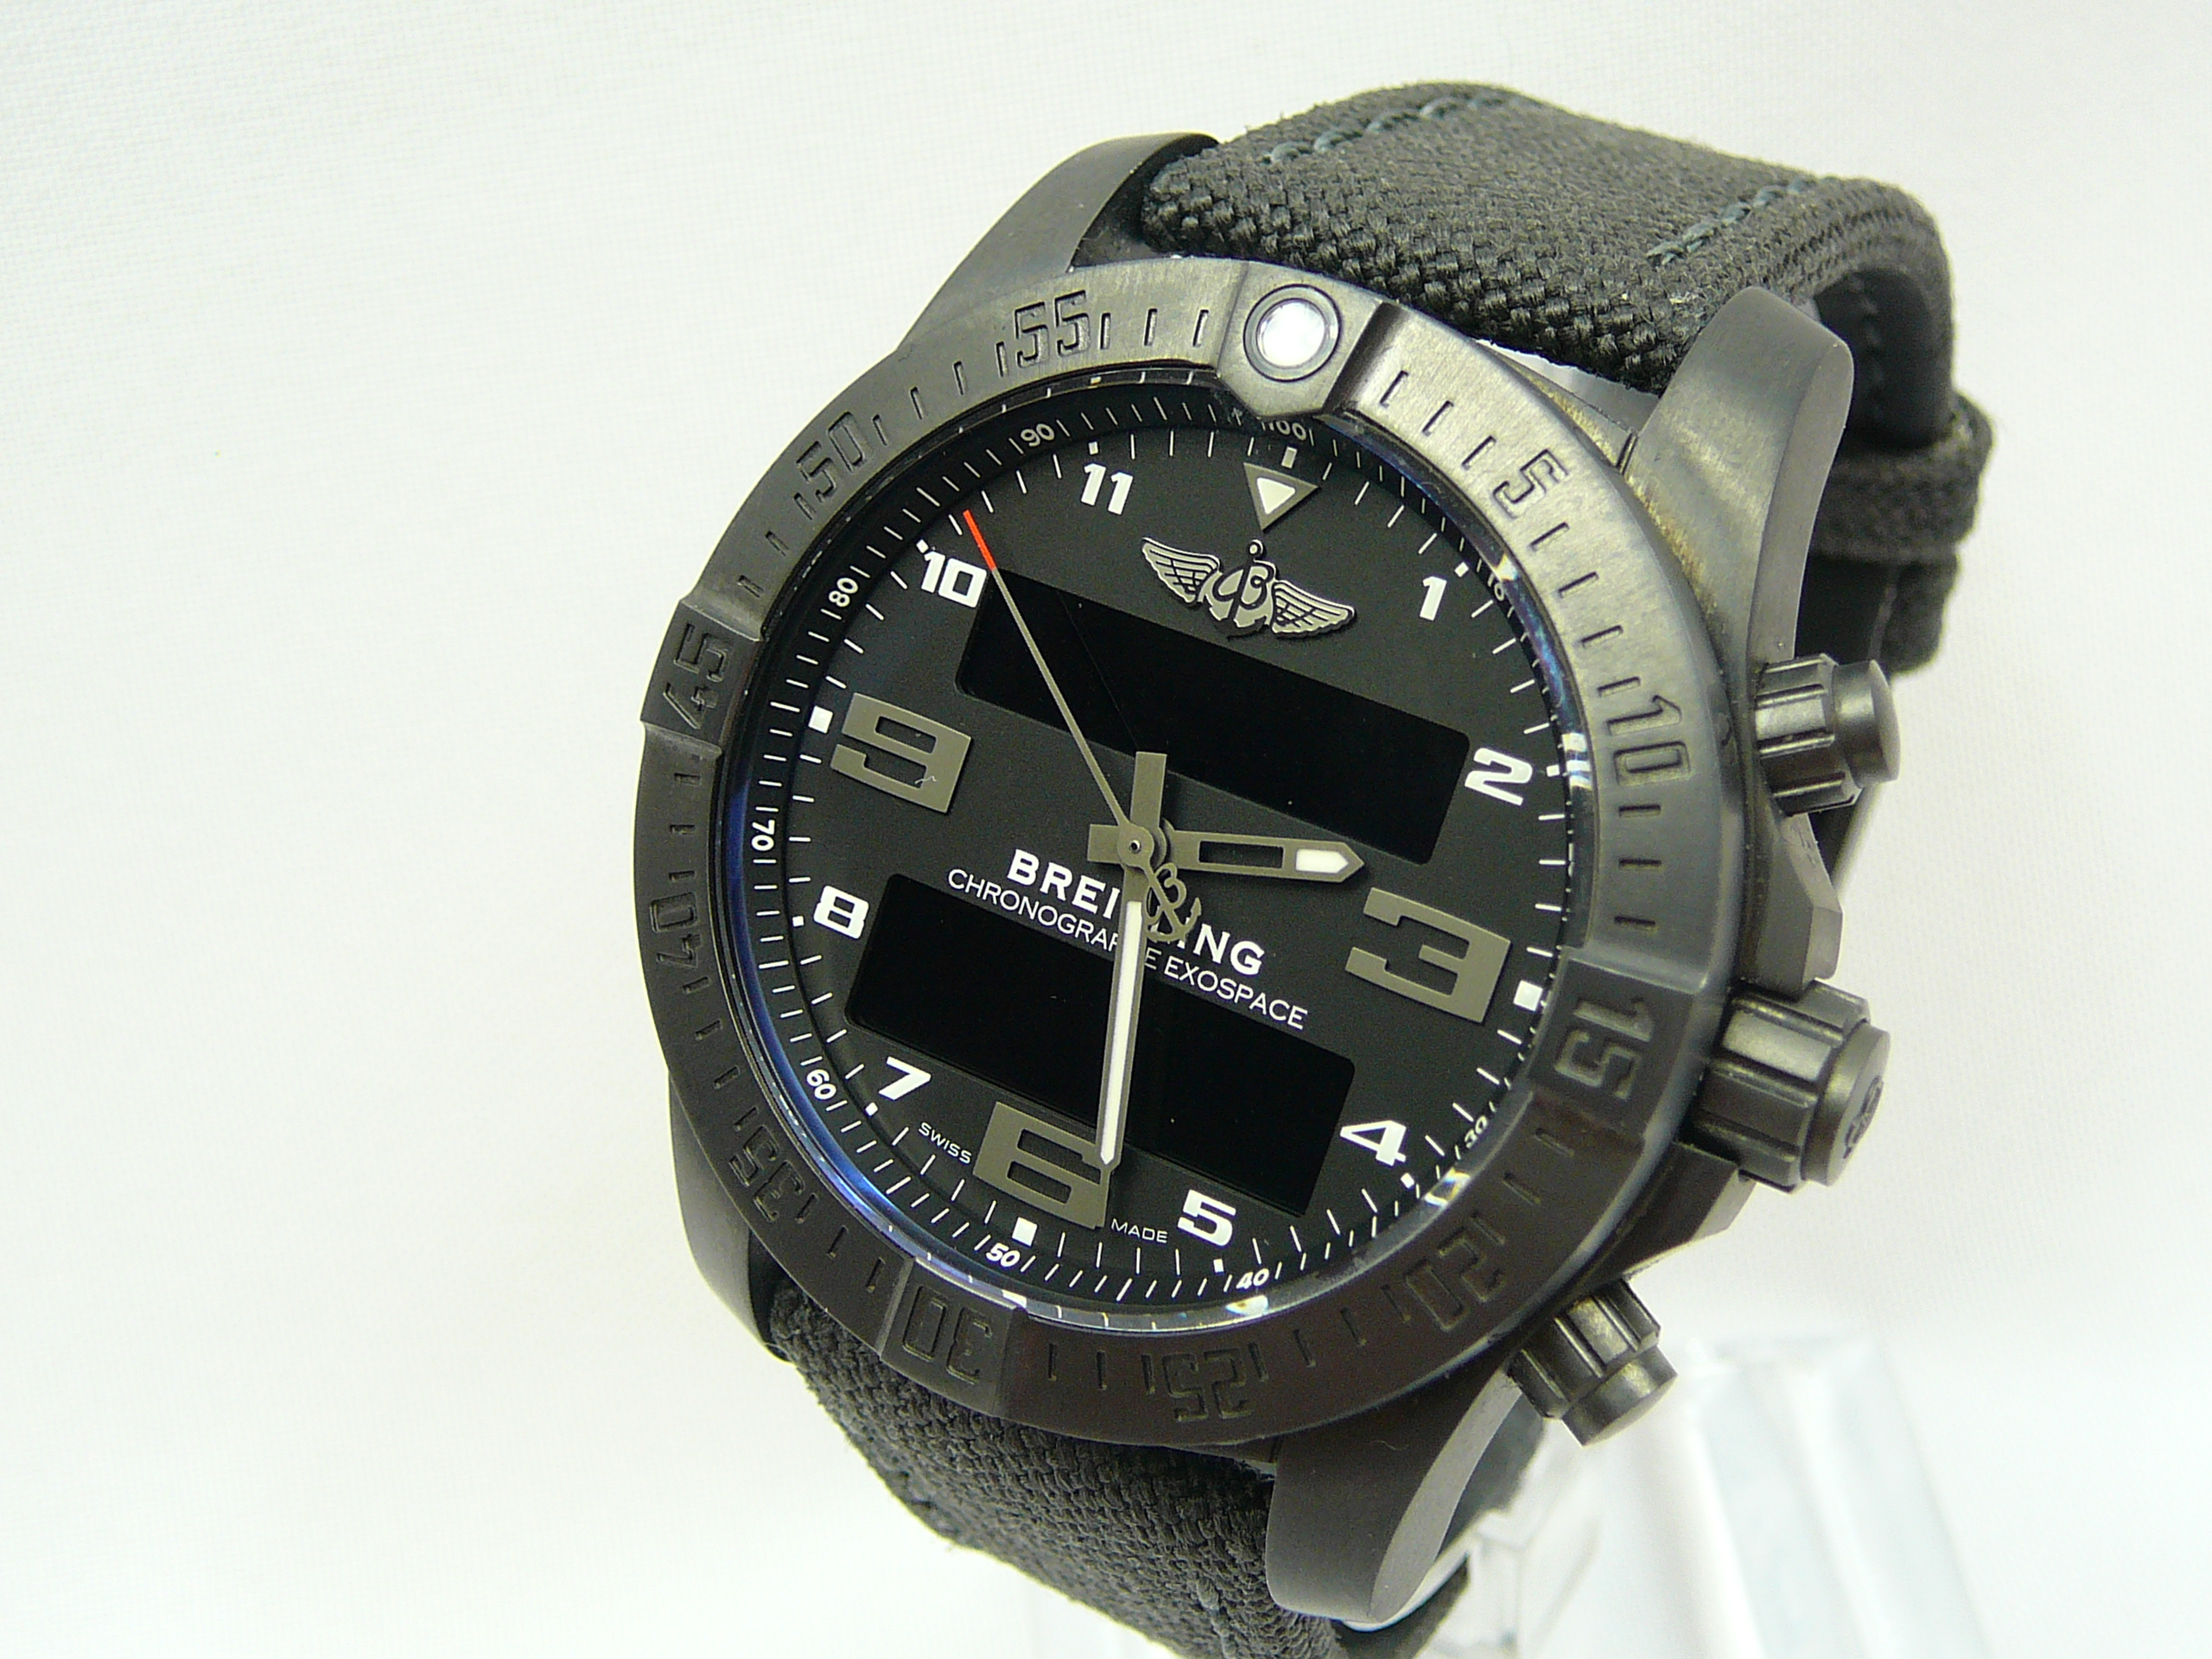 Gents Breitling Wrist Watch - Image 2 of 4